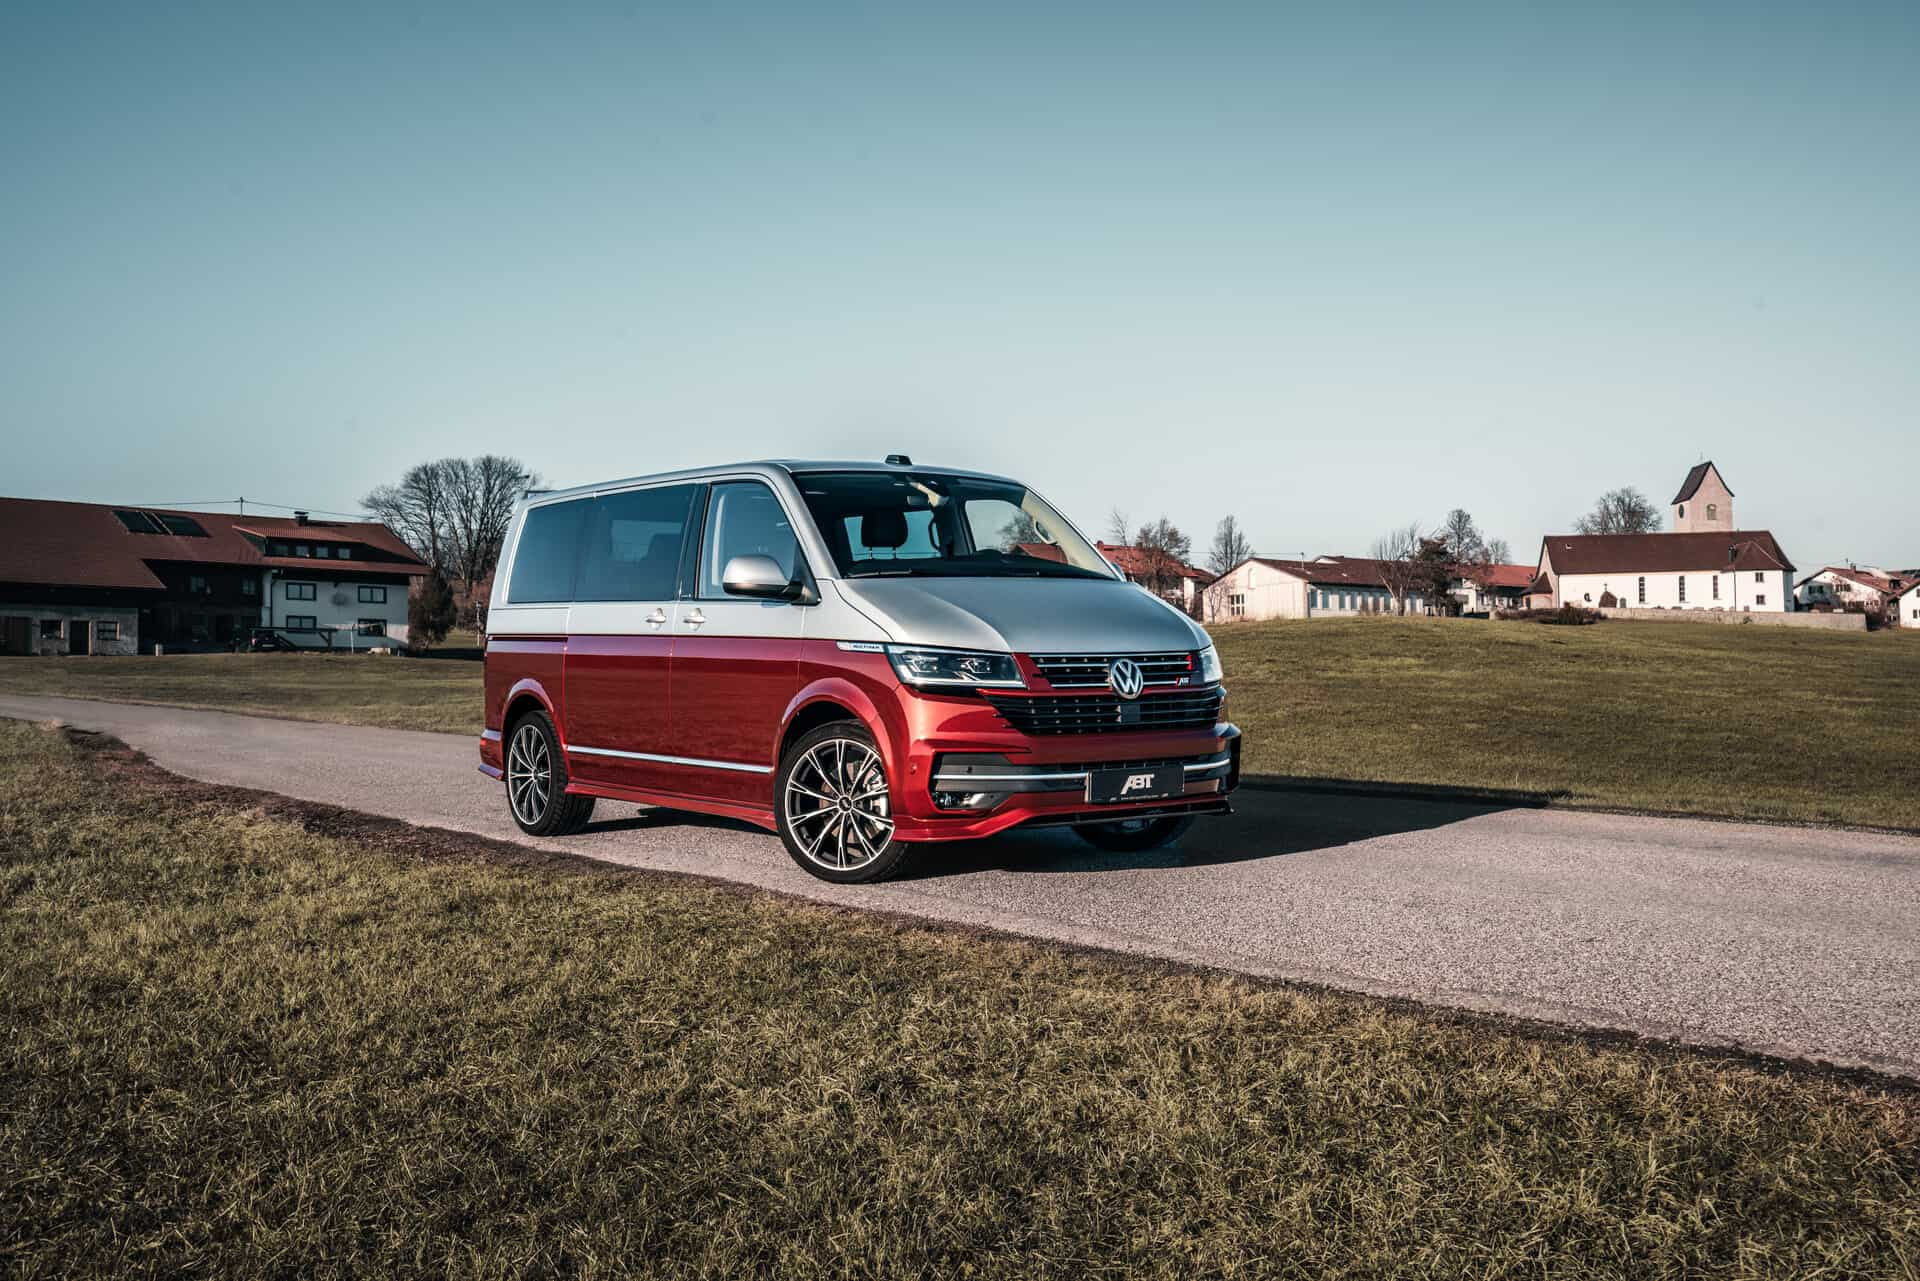 2020 ABT VW T6.1 Multivan